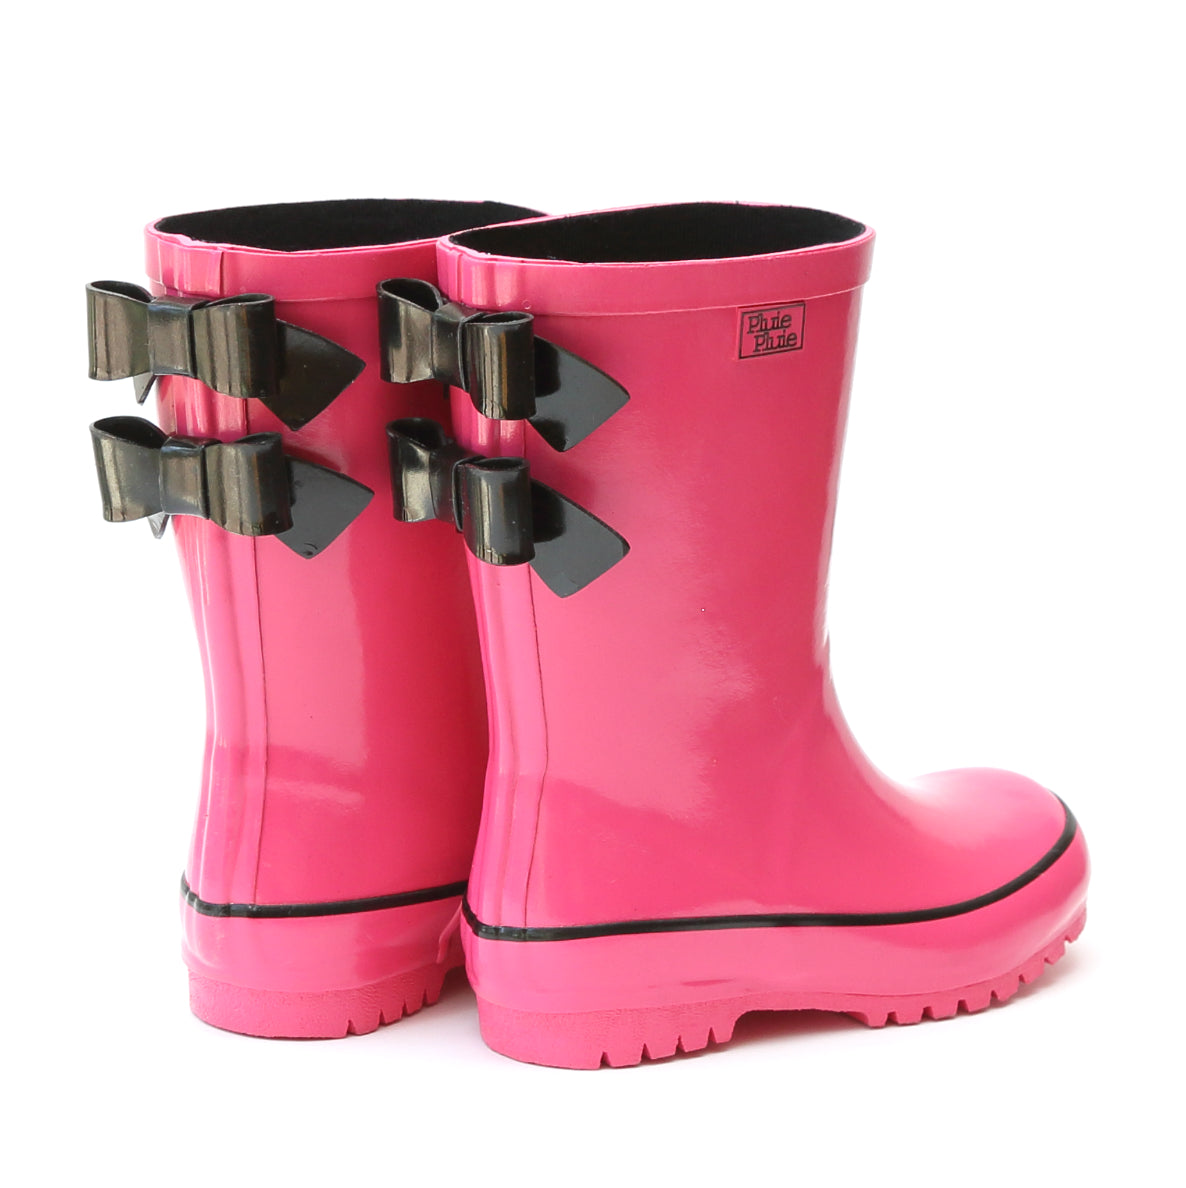 Pluie Pluie Girls Solid Fuchsia Double Bow Rain Boot